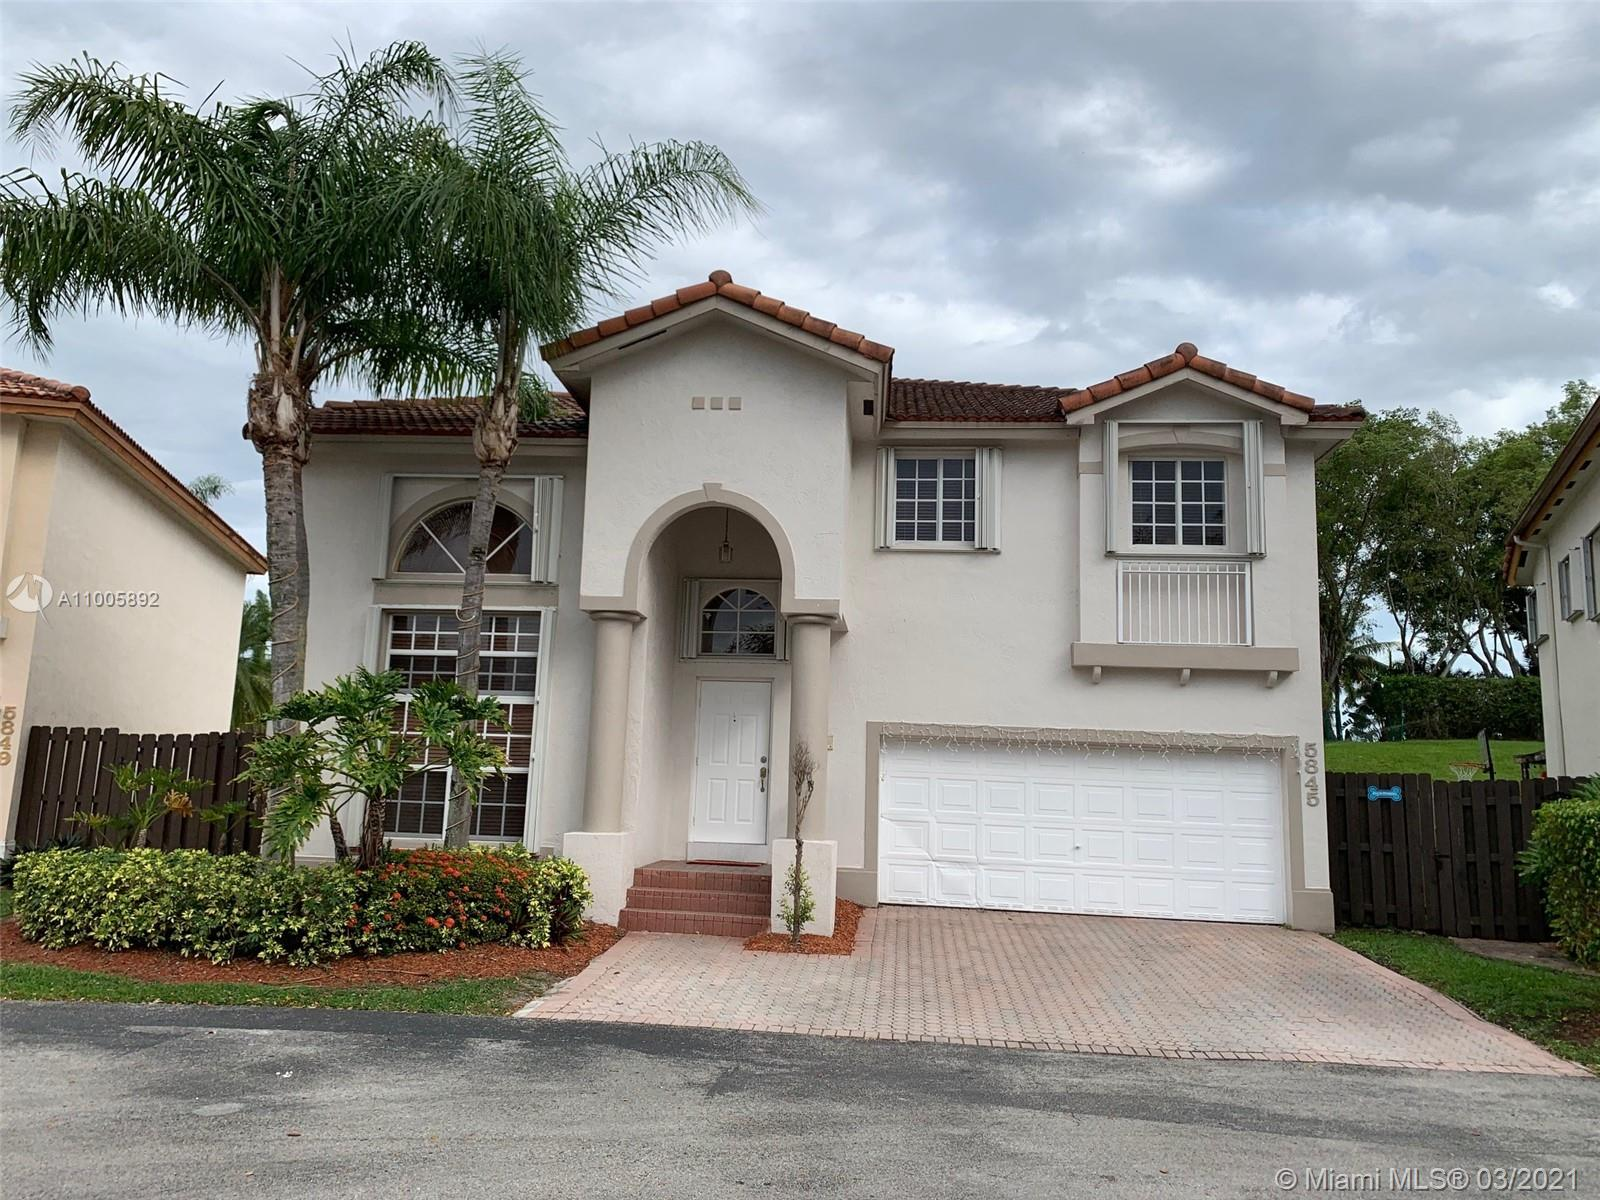 Doral Isles - 5845 NW 112 ct, Doral, FL 33178